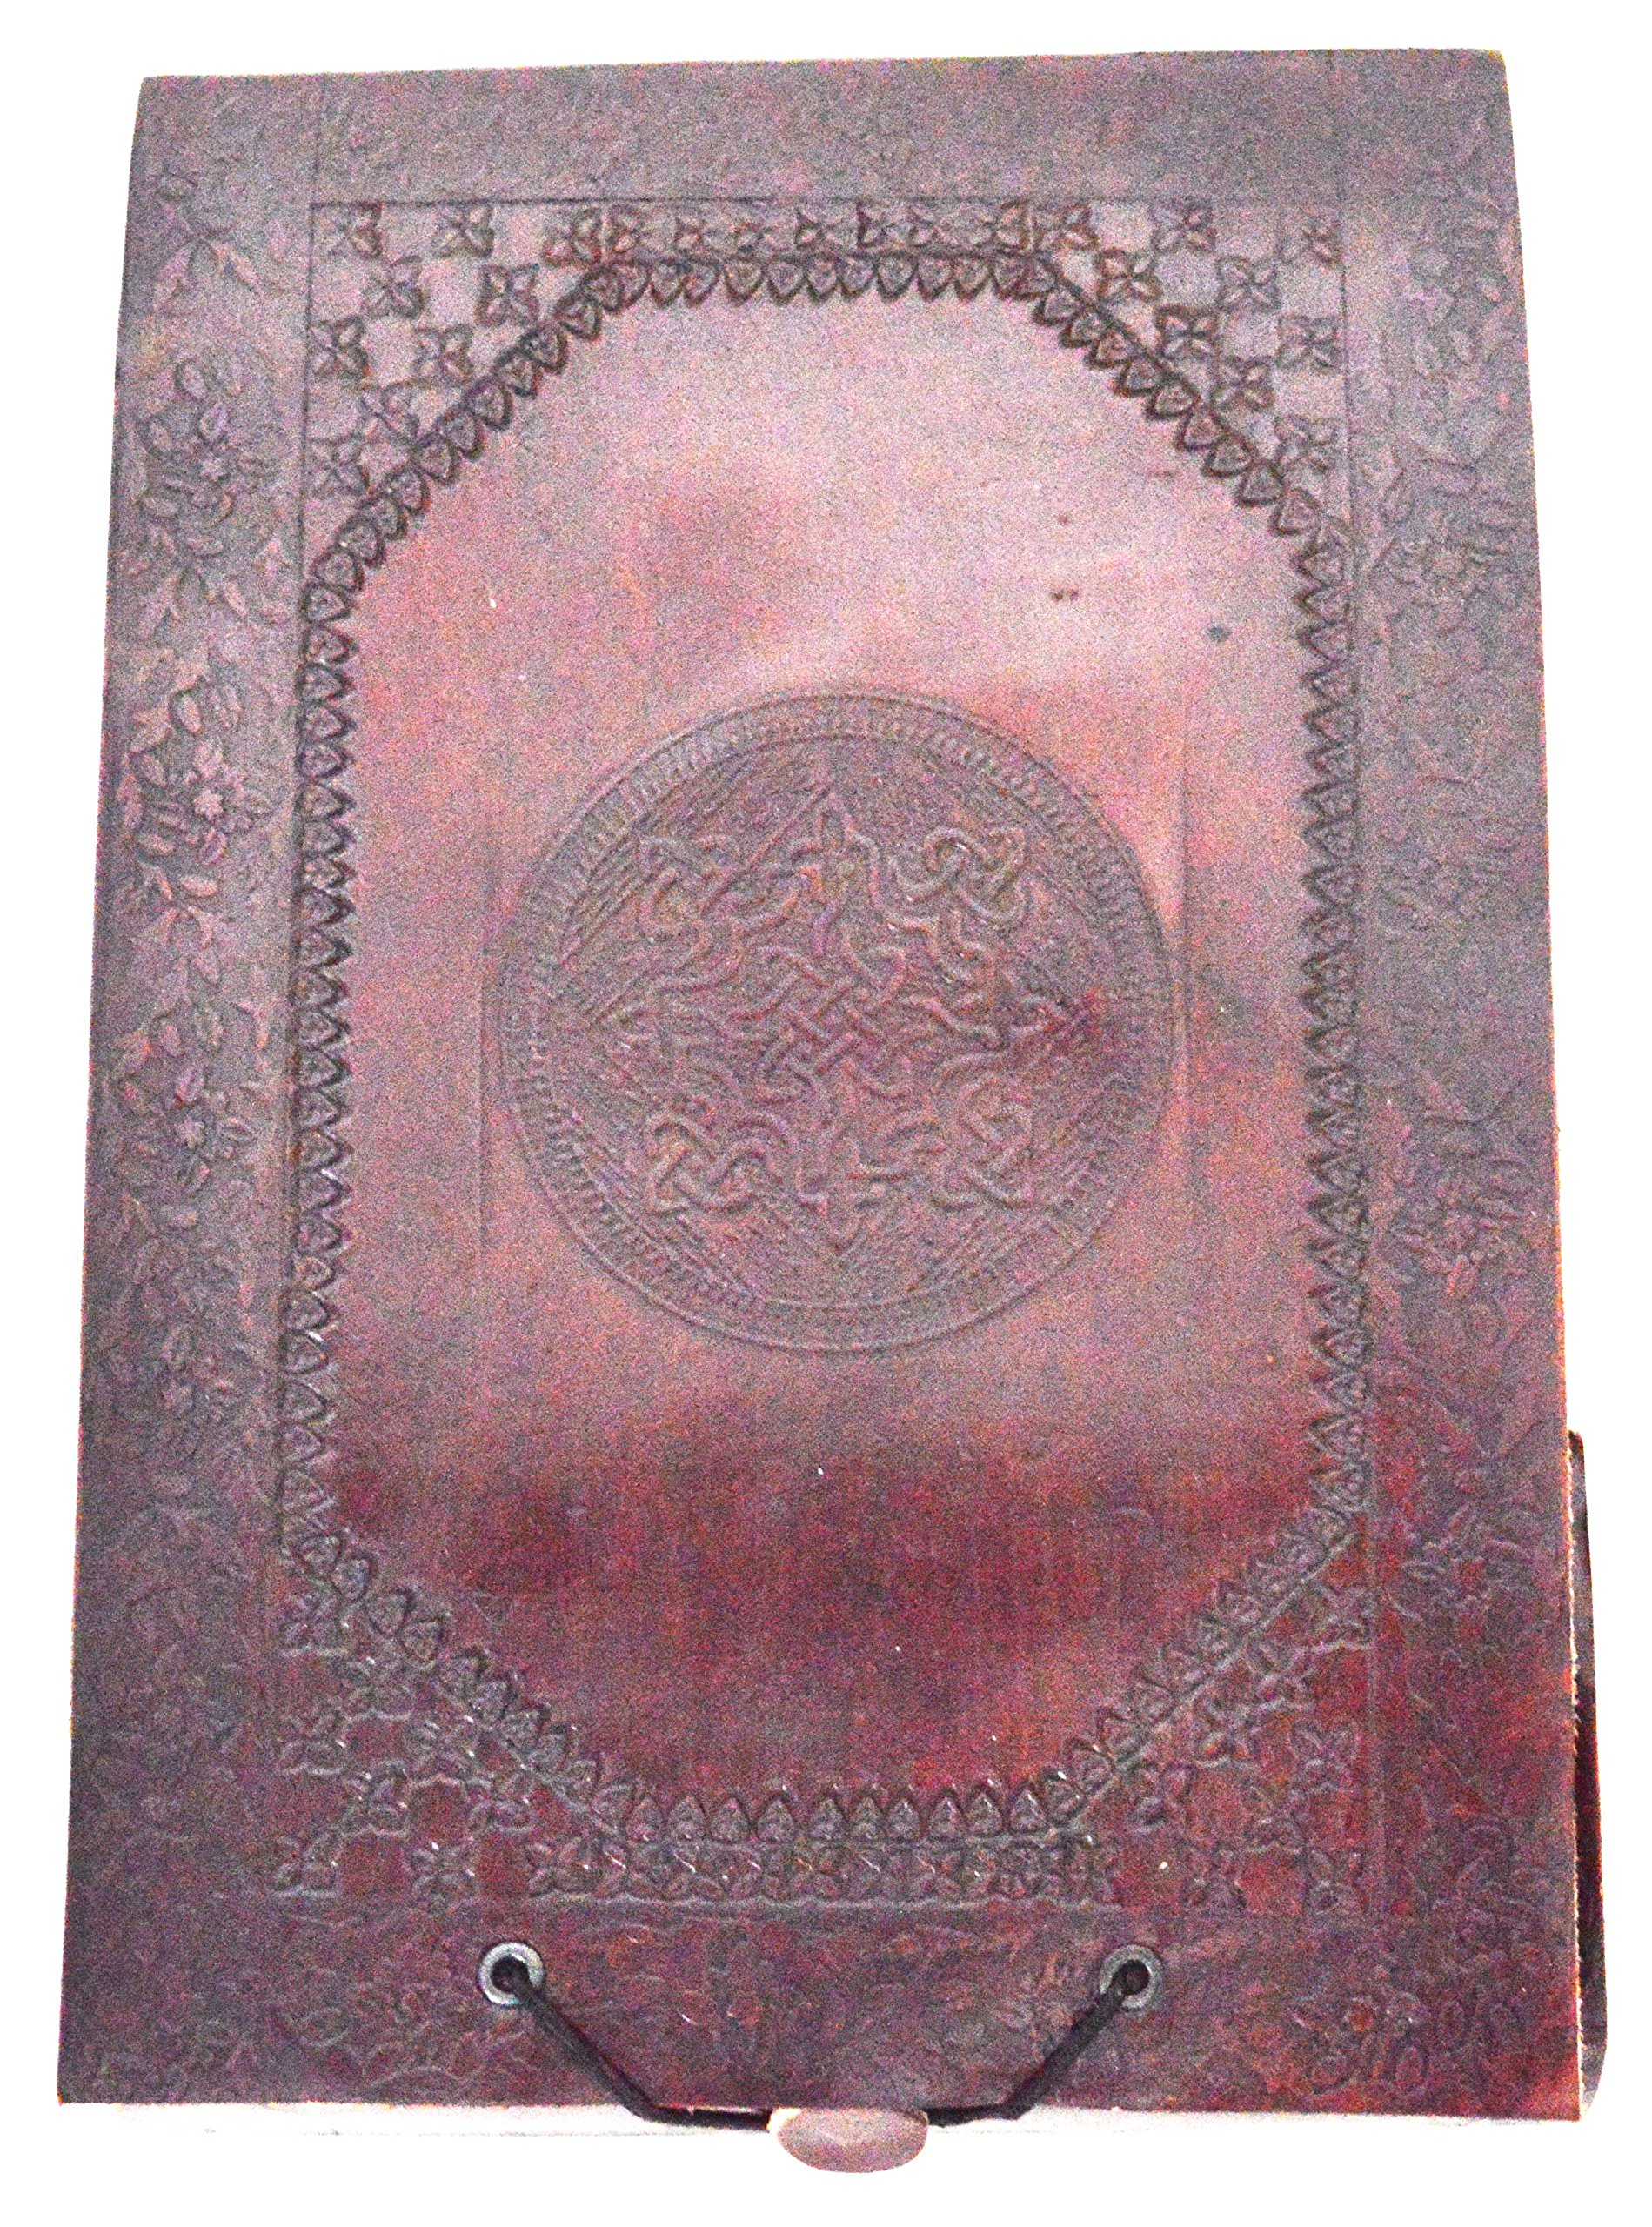 Zap Impex Mother's Day Gift Handmade Celtic Leather Cover Embossed Journals Pockets Photo Collection Album